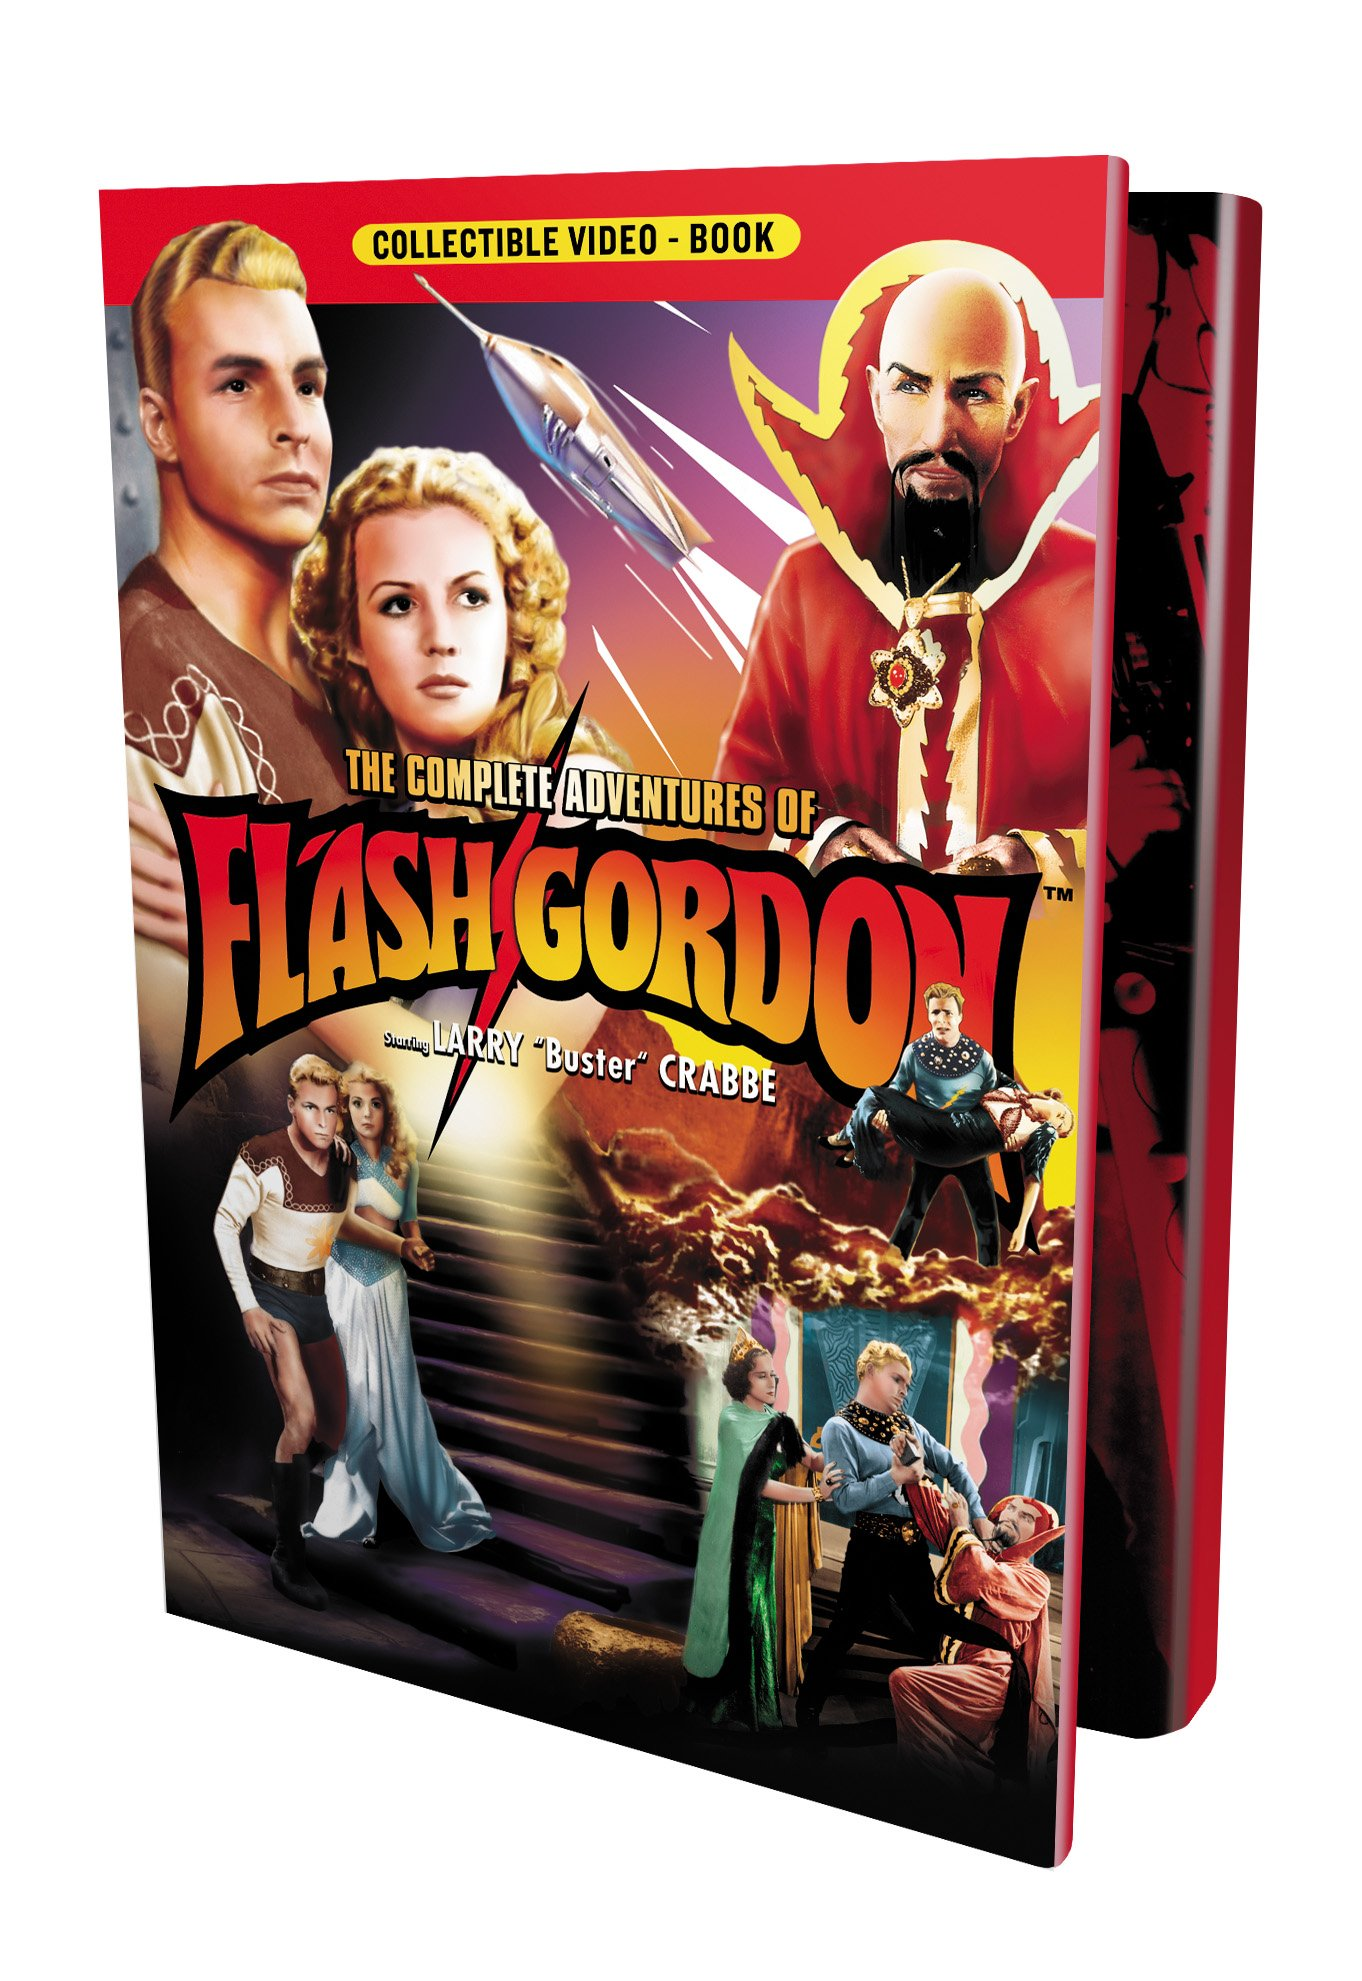 The Complete Adventures of Flash Gordon by Madacy (Music Distributor)